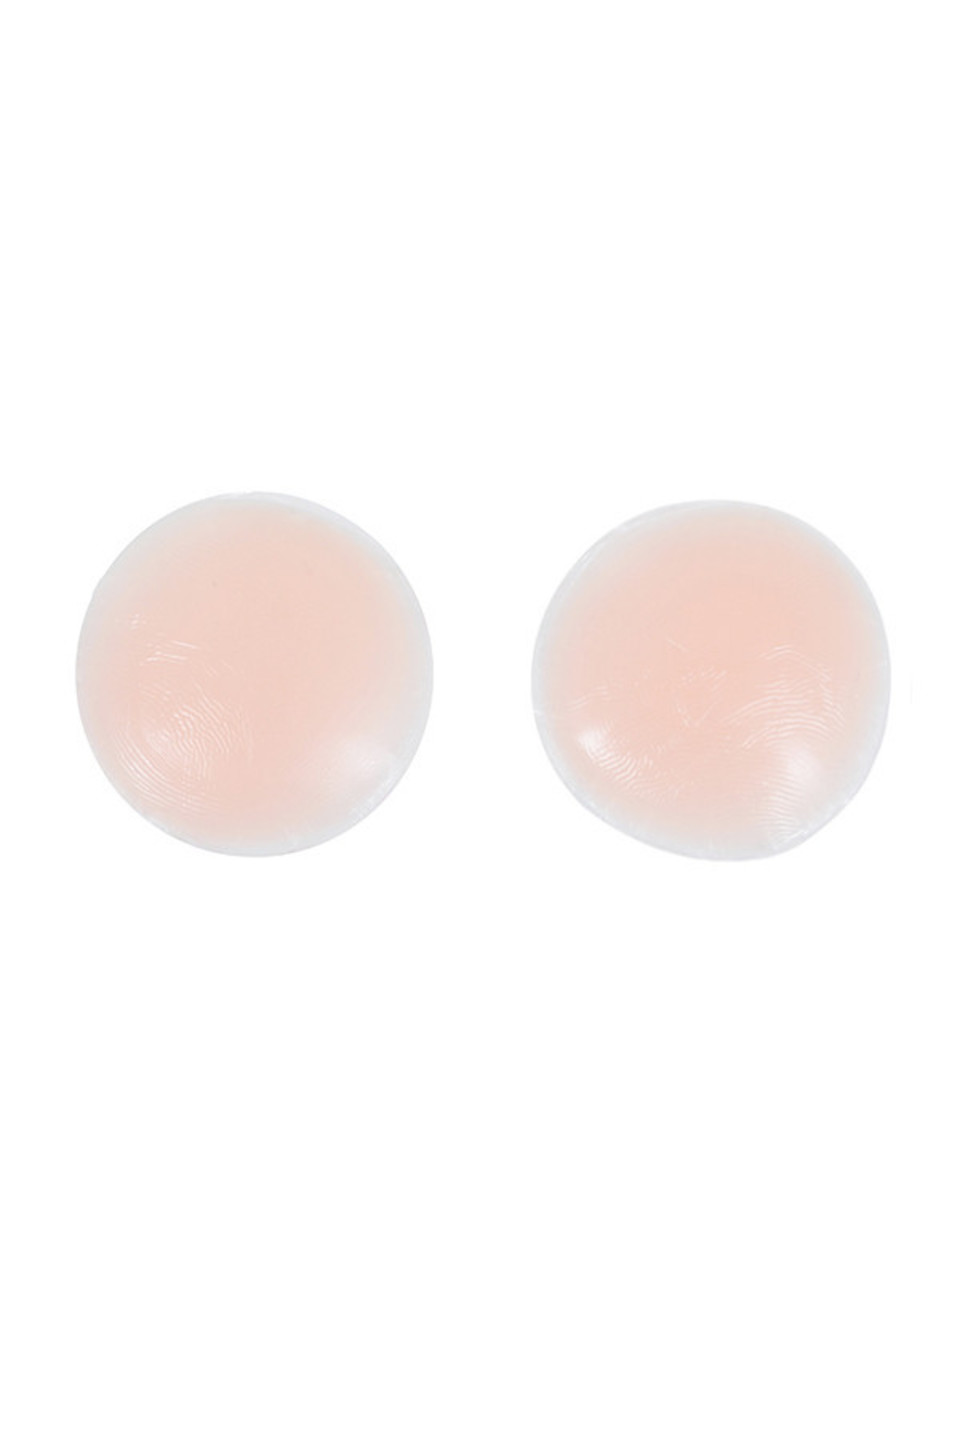 Silicon Reusable Nipple Covers